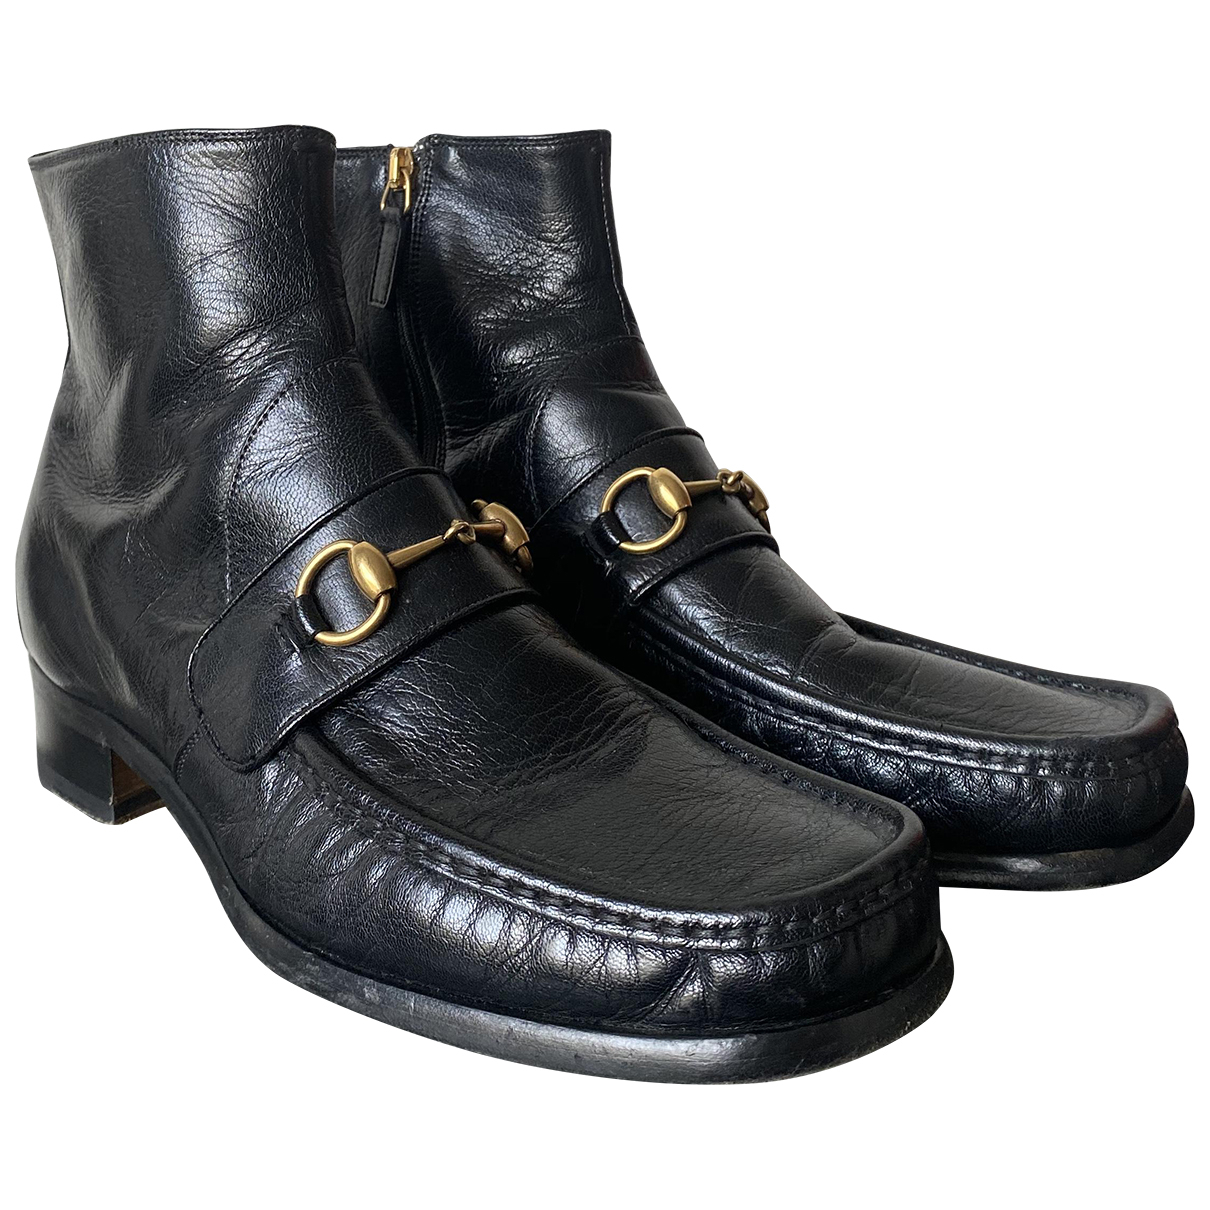 Gucci N Black Leather Boots for Men